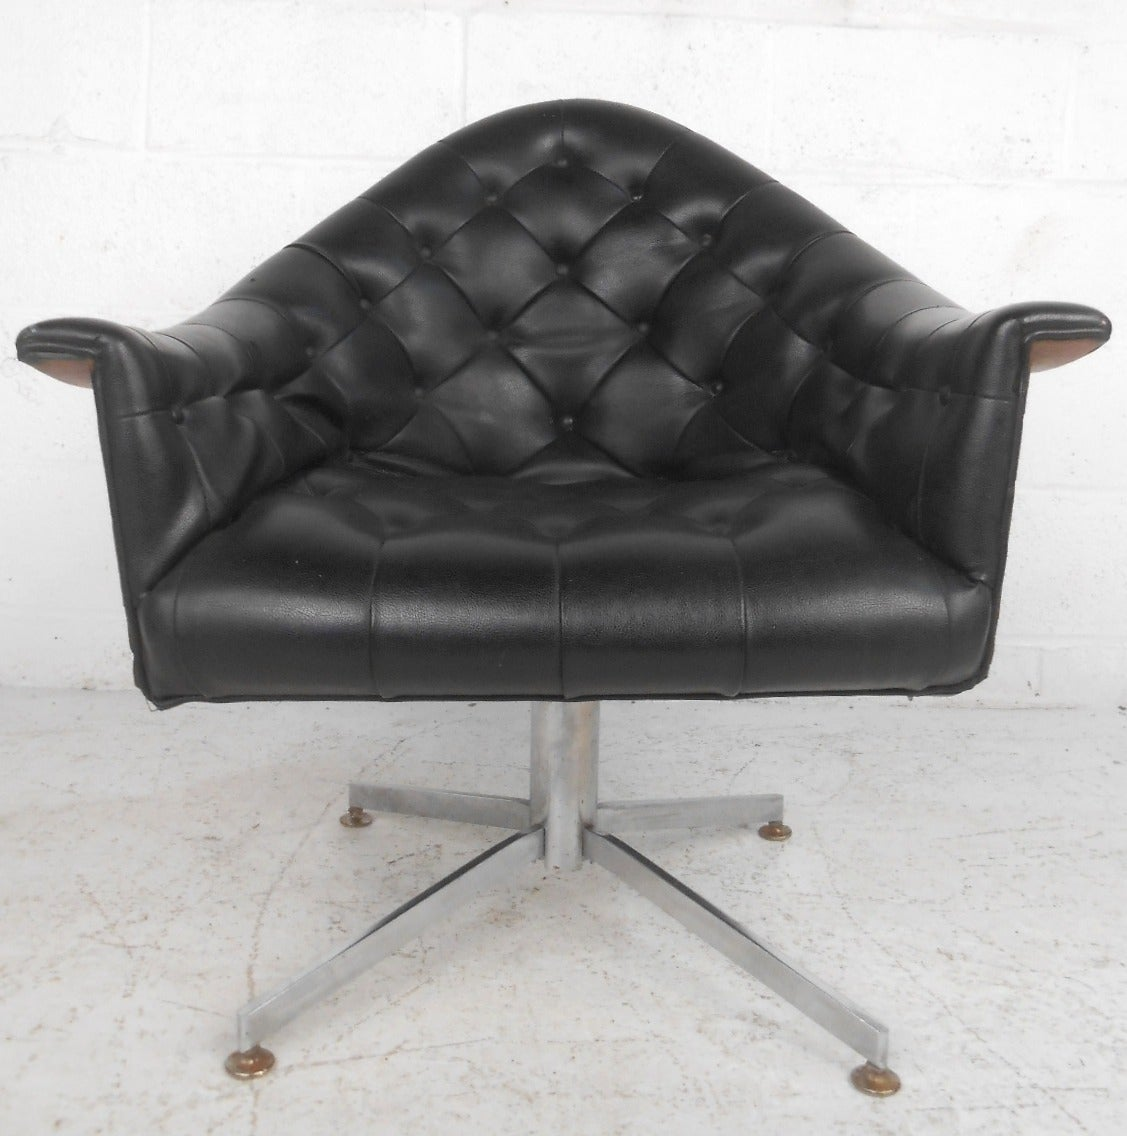 Modern swivel desk chair - Mid Century Modern Adrian Pearsall Style Tufted Swivel Desk Chair 2